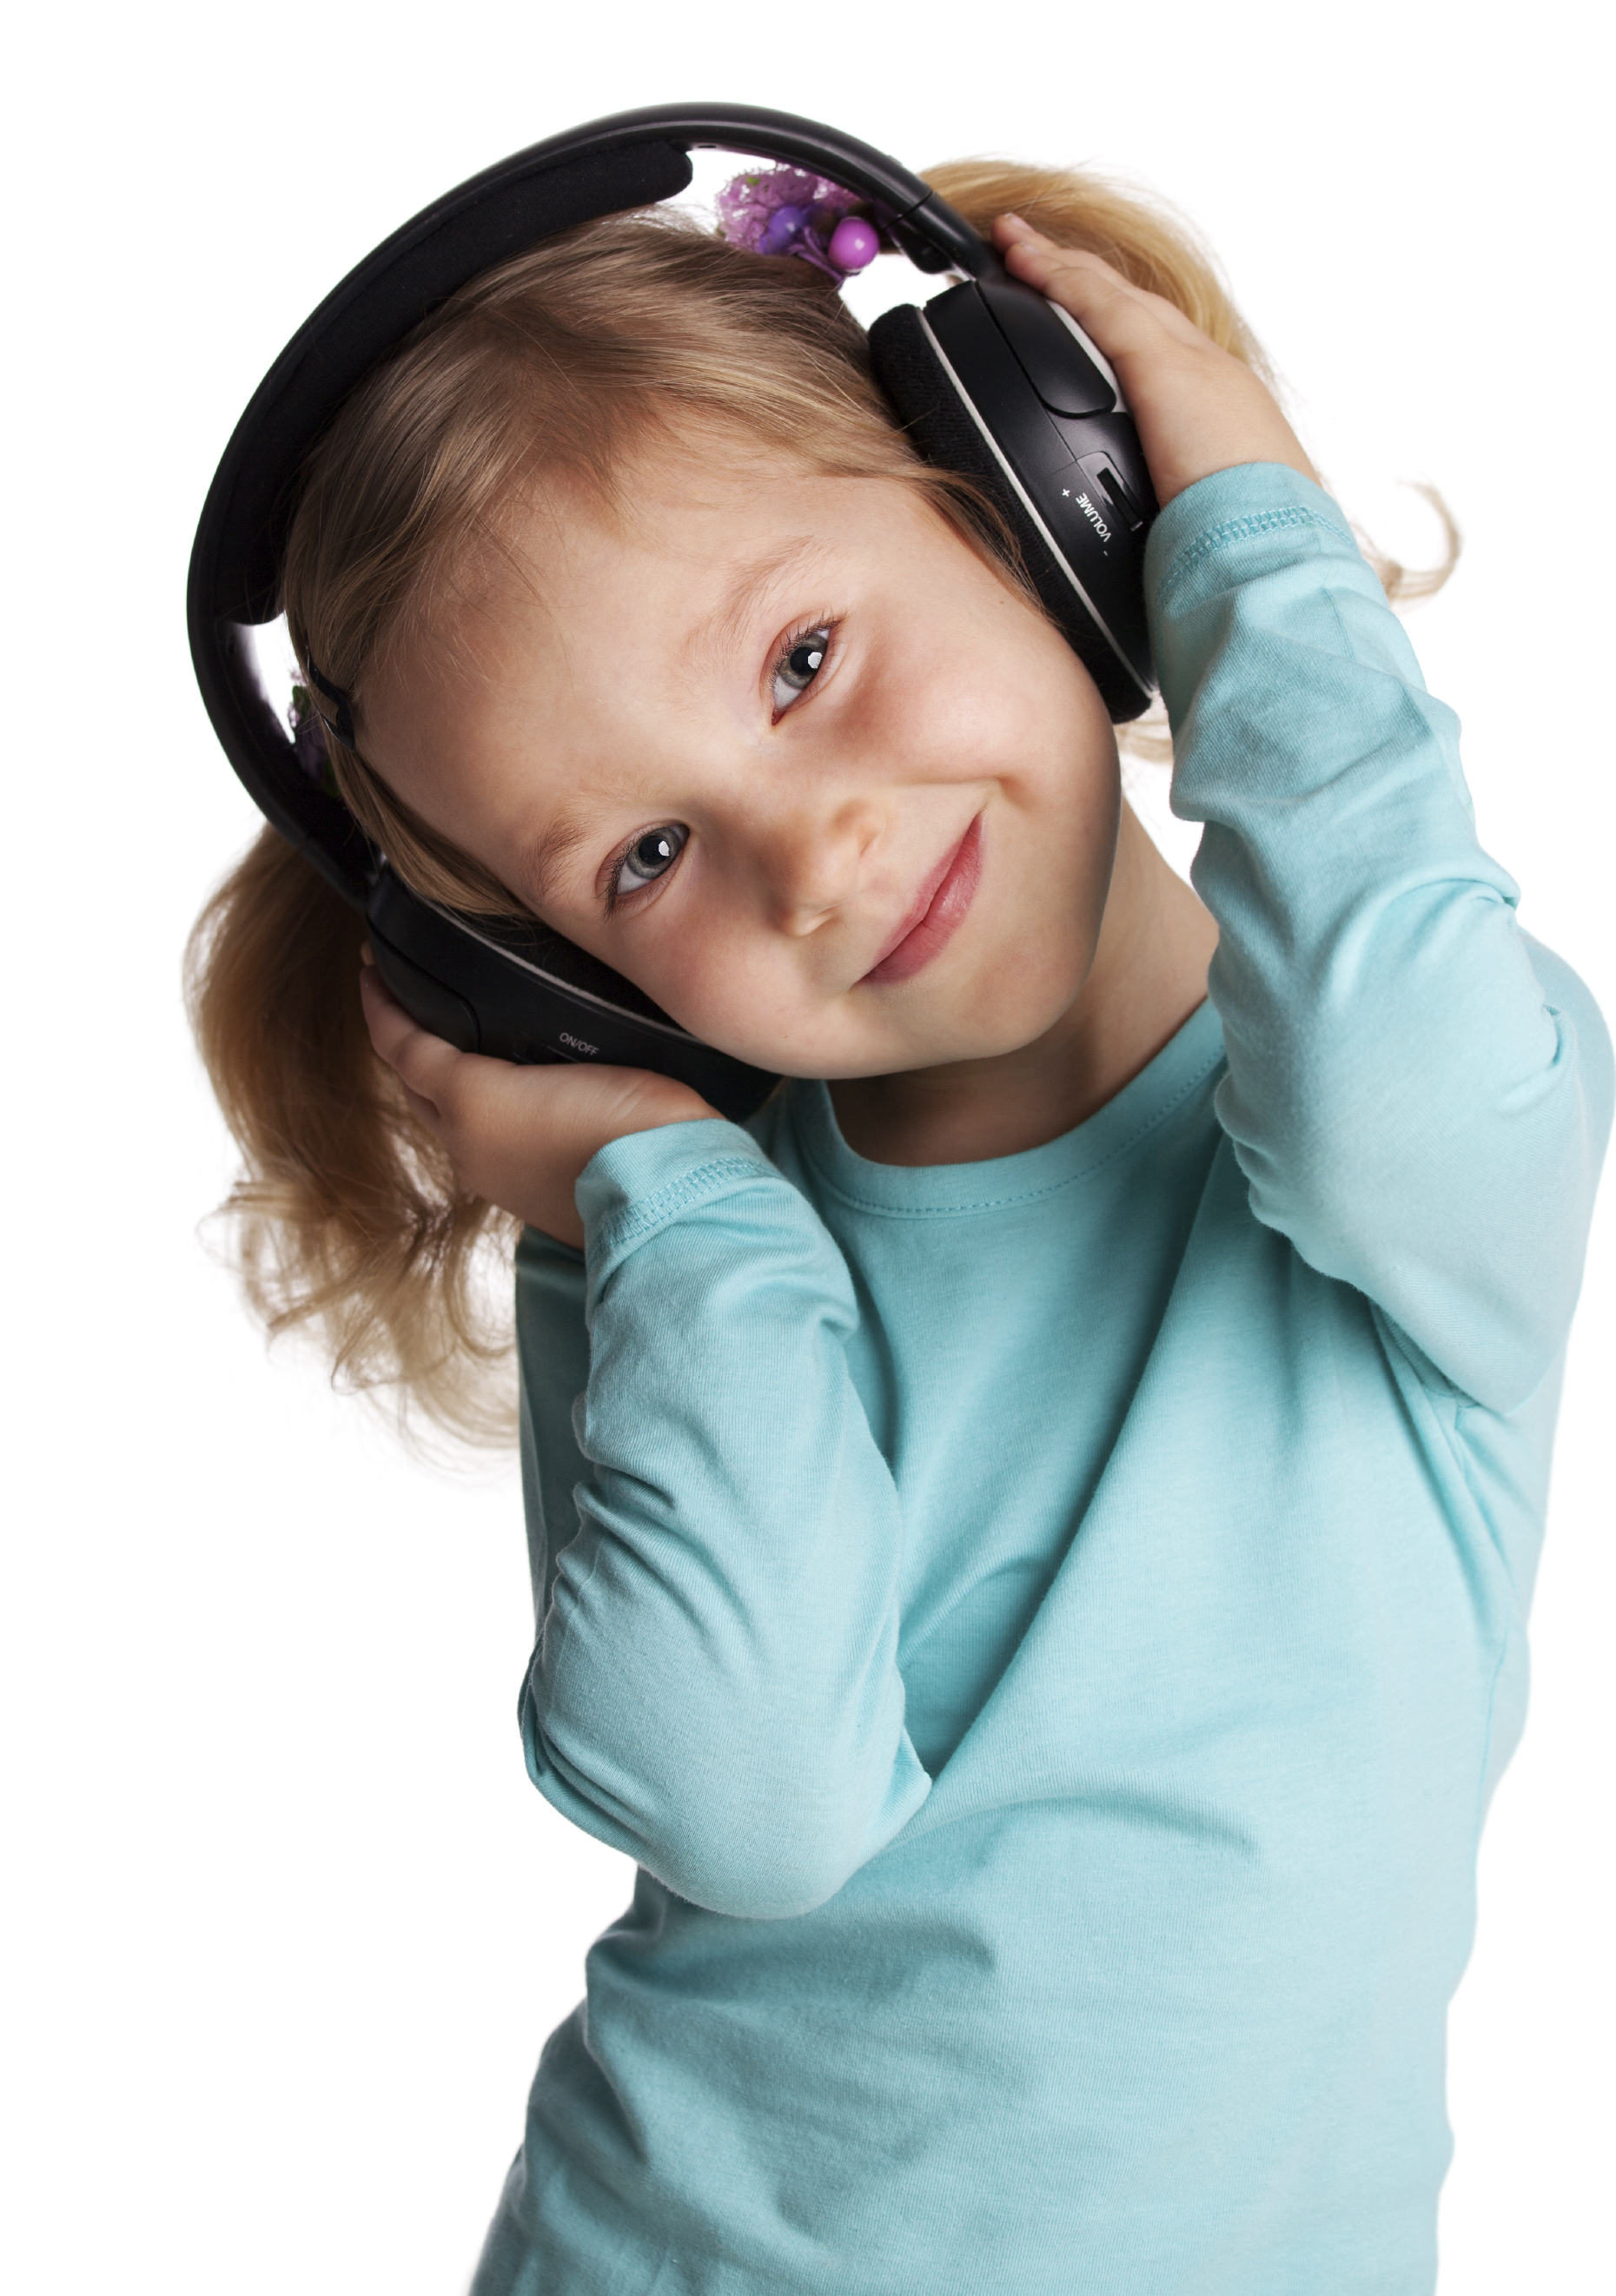 Little girl in headphones